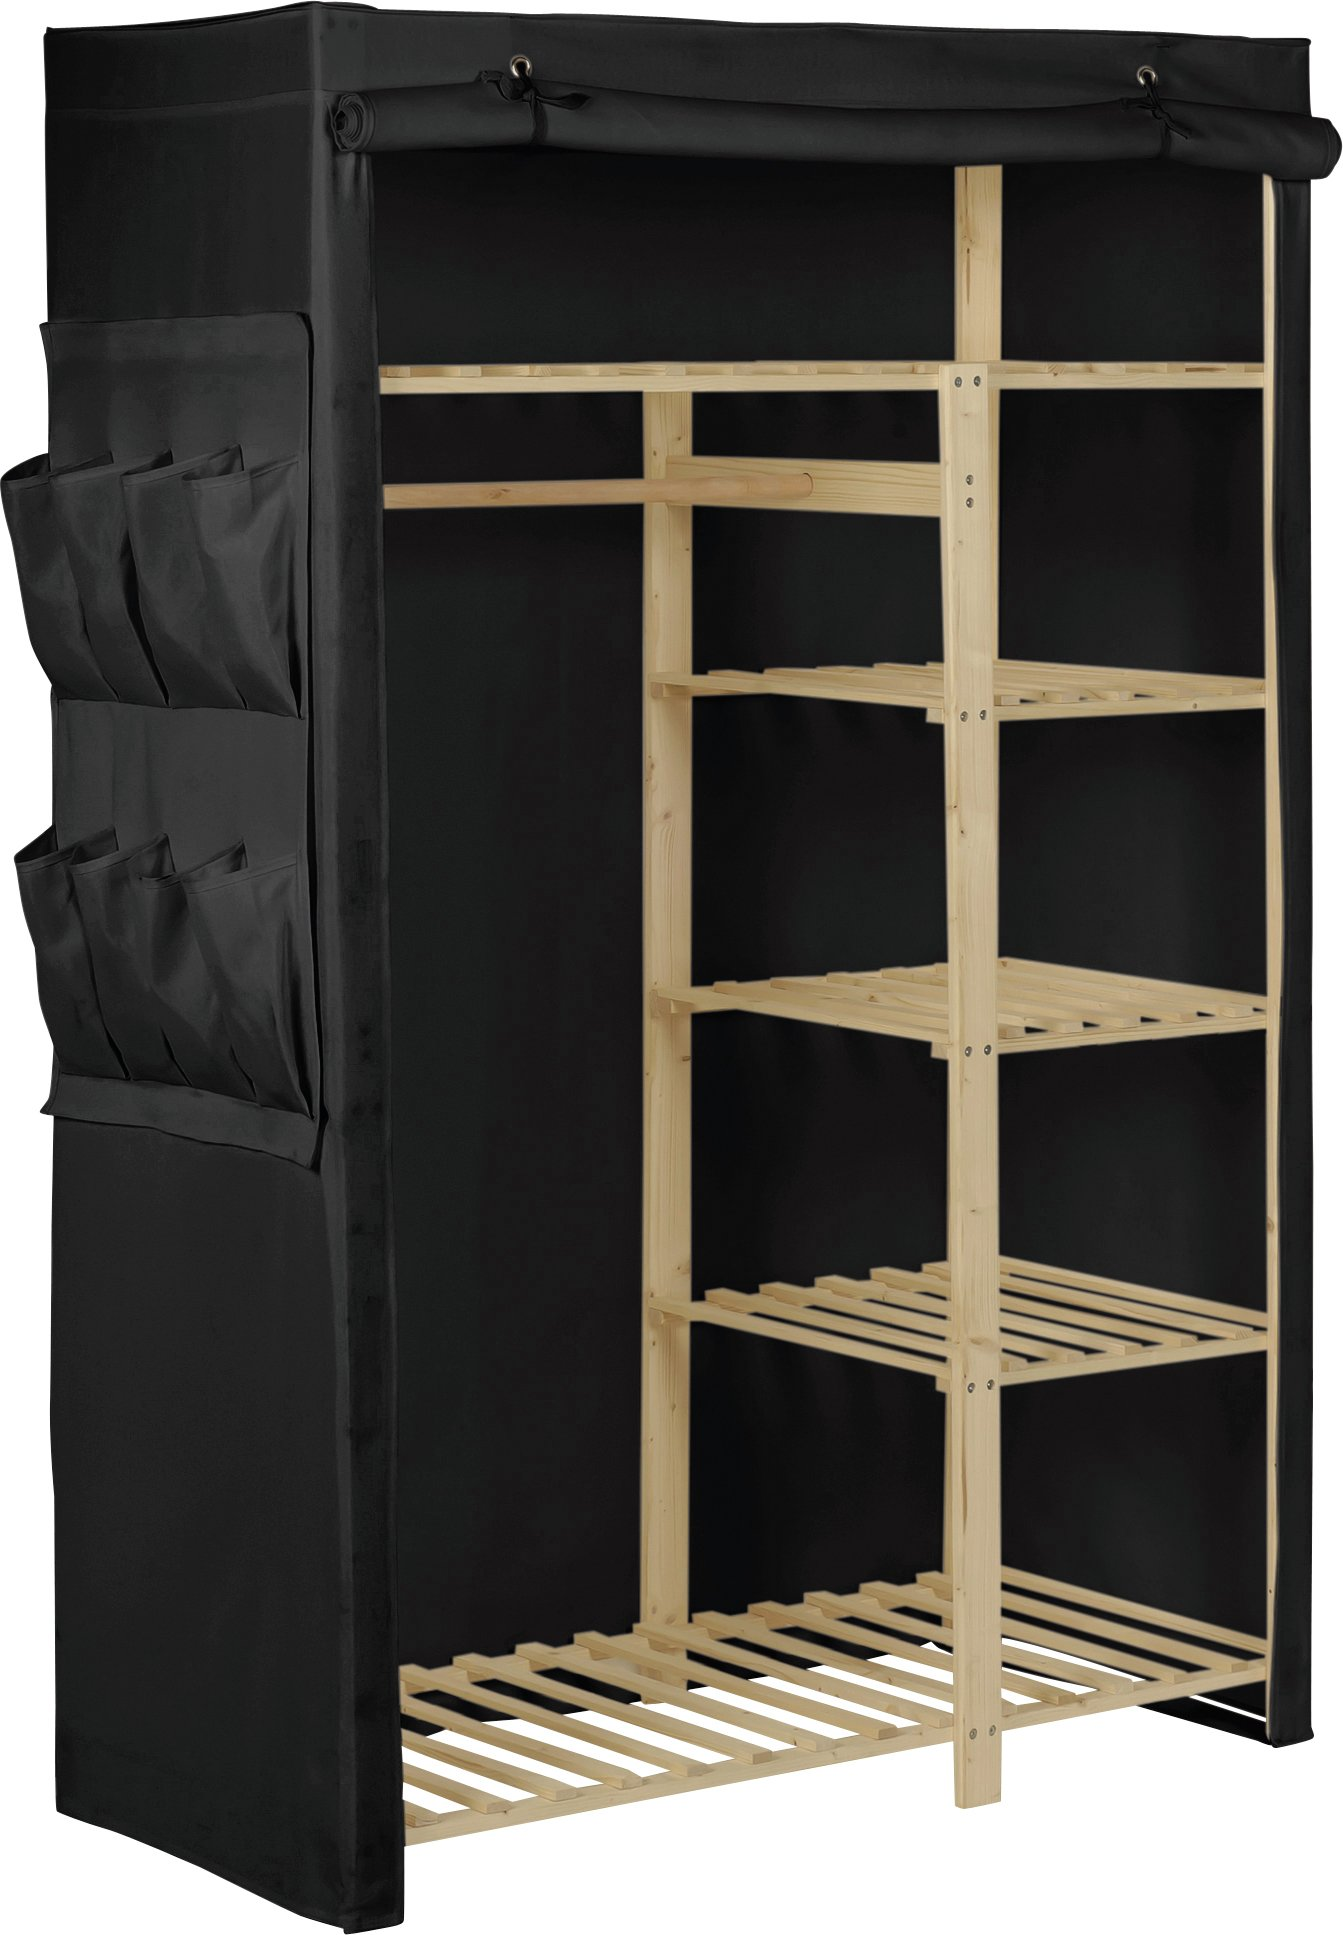 Argos Home Polycotton and Pine Double Wardrobe - Black